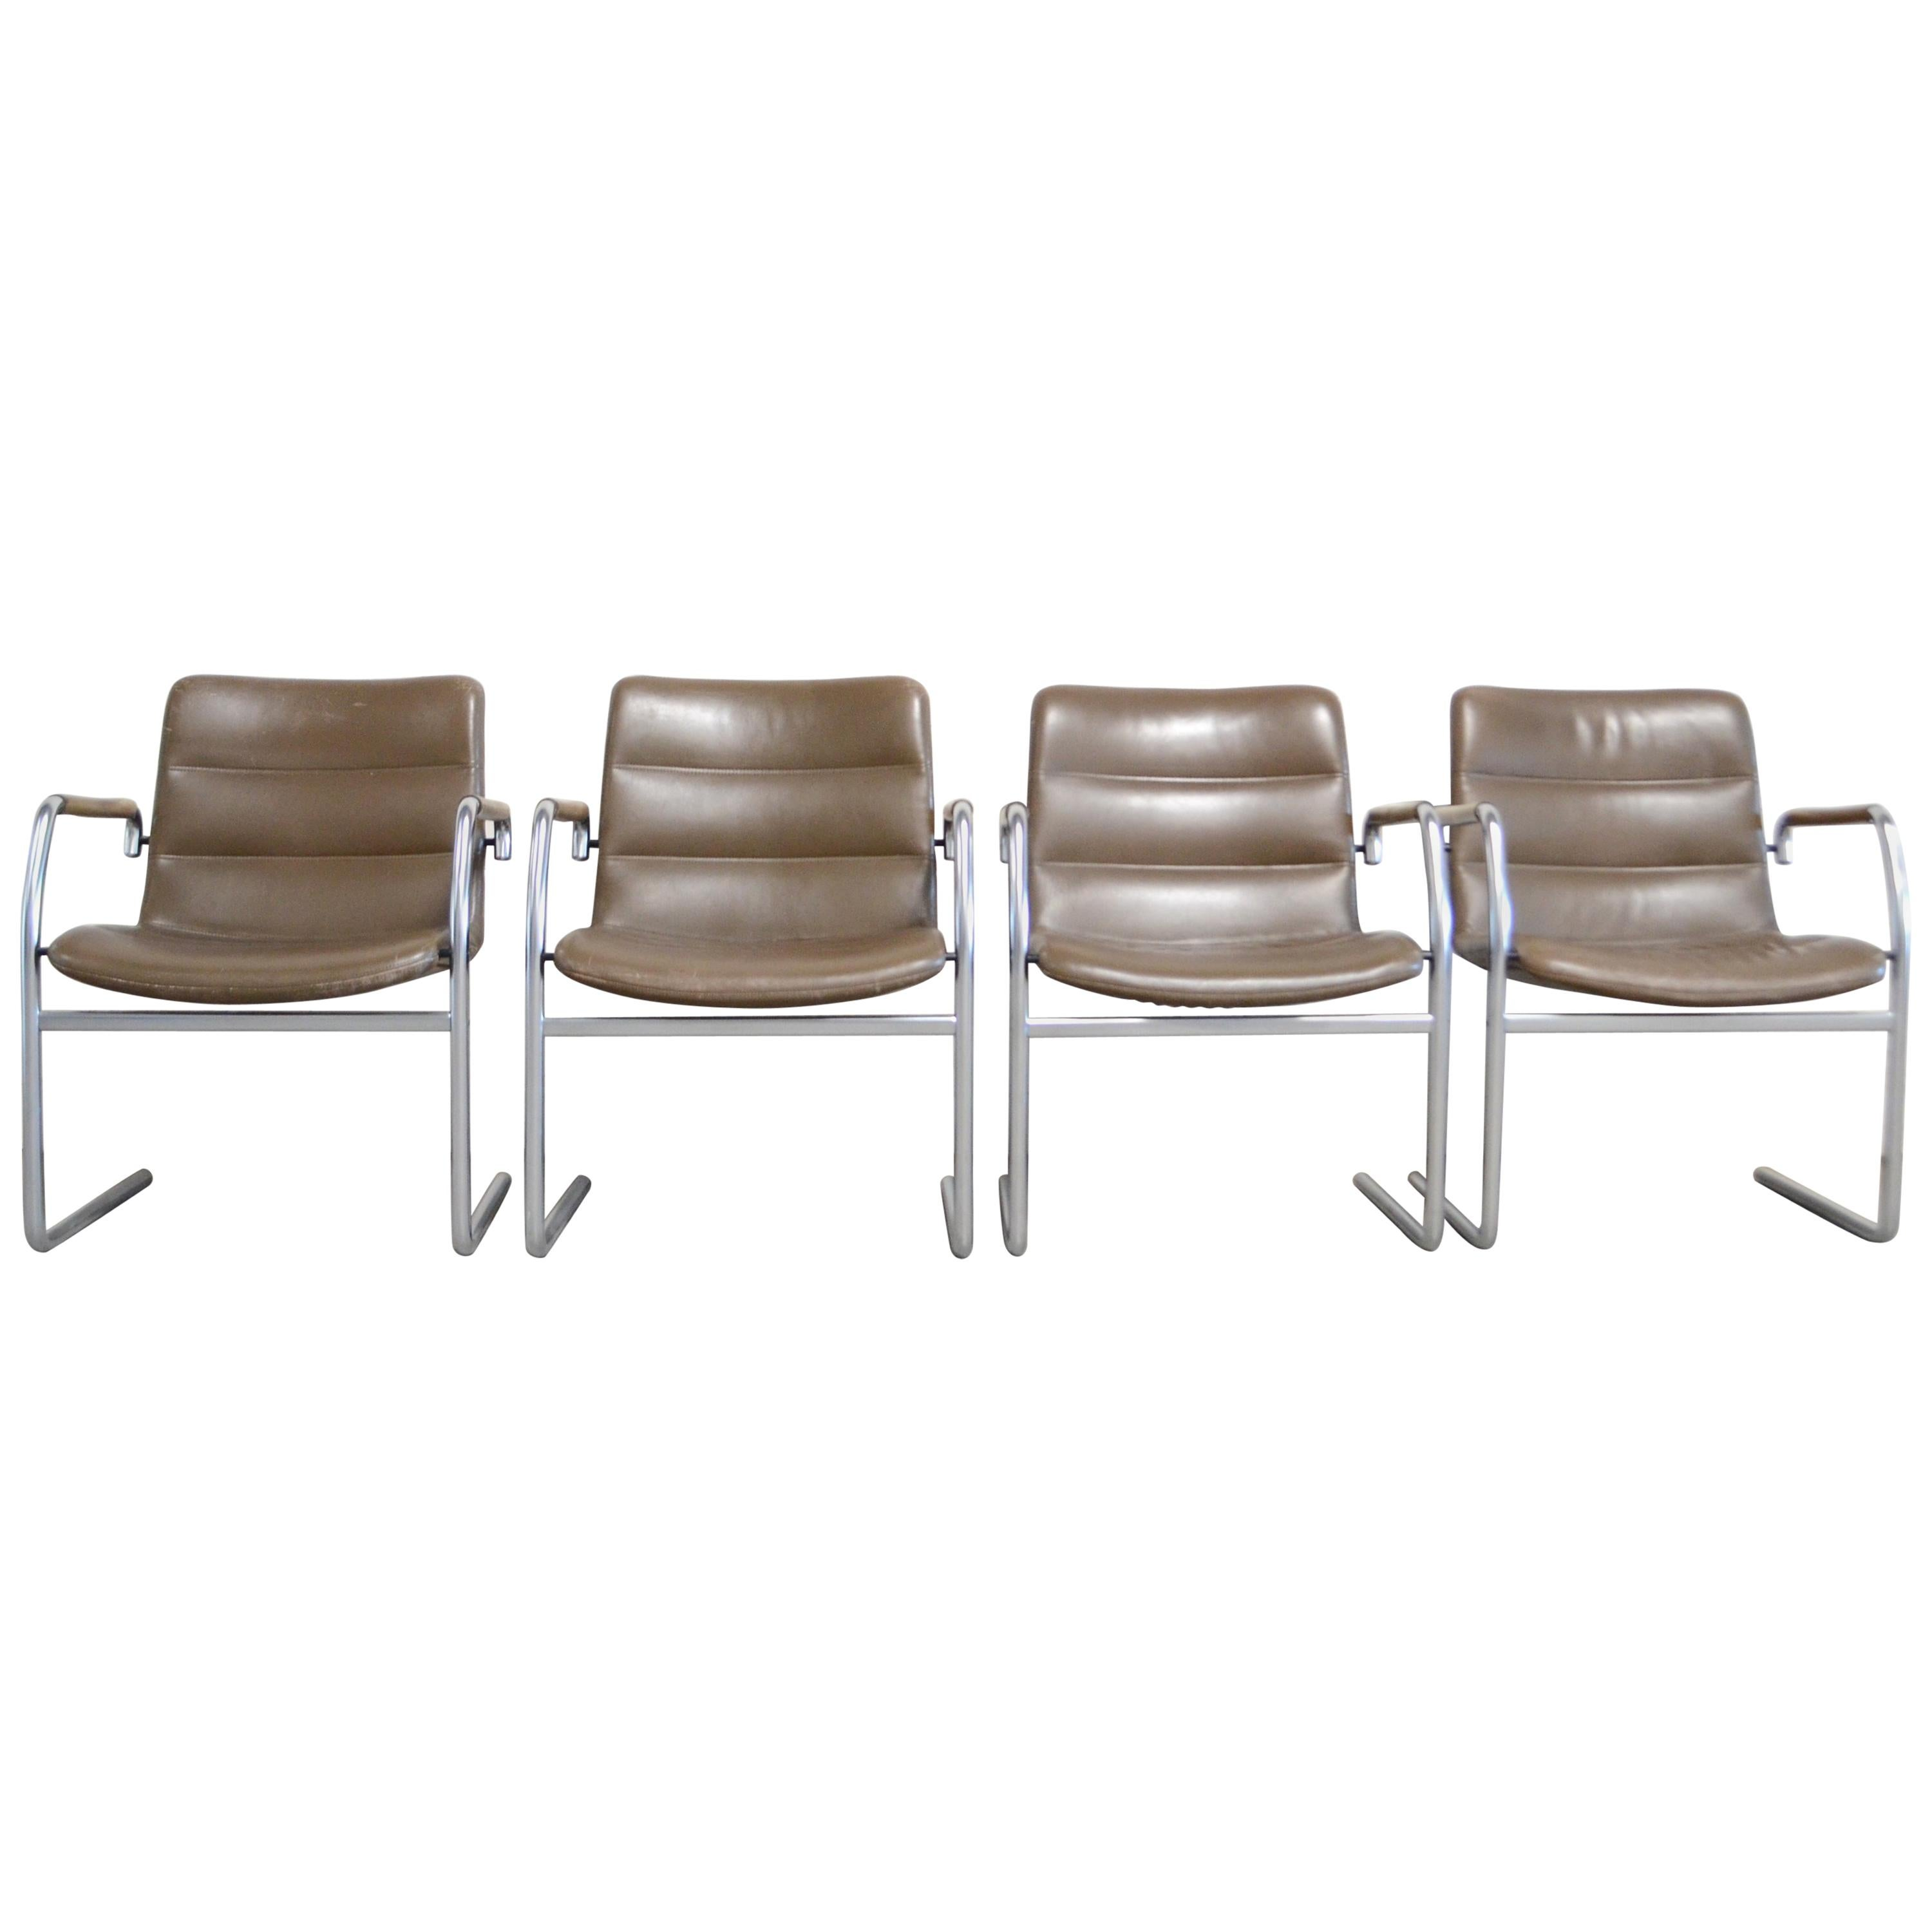 Jorgen Kastholm 4 Cantilever Leather Armchair Chair for Kusch+Co